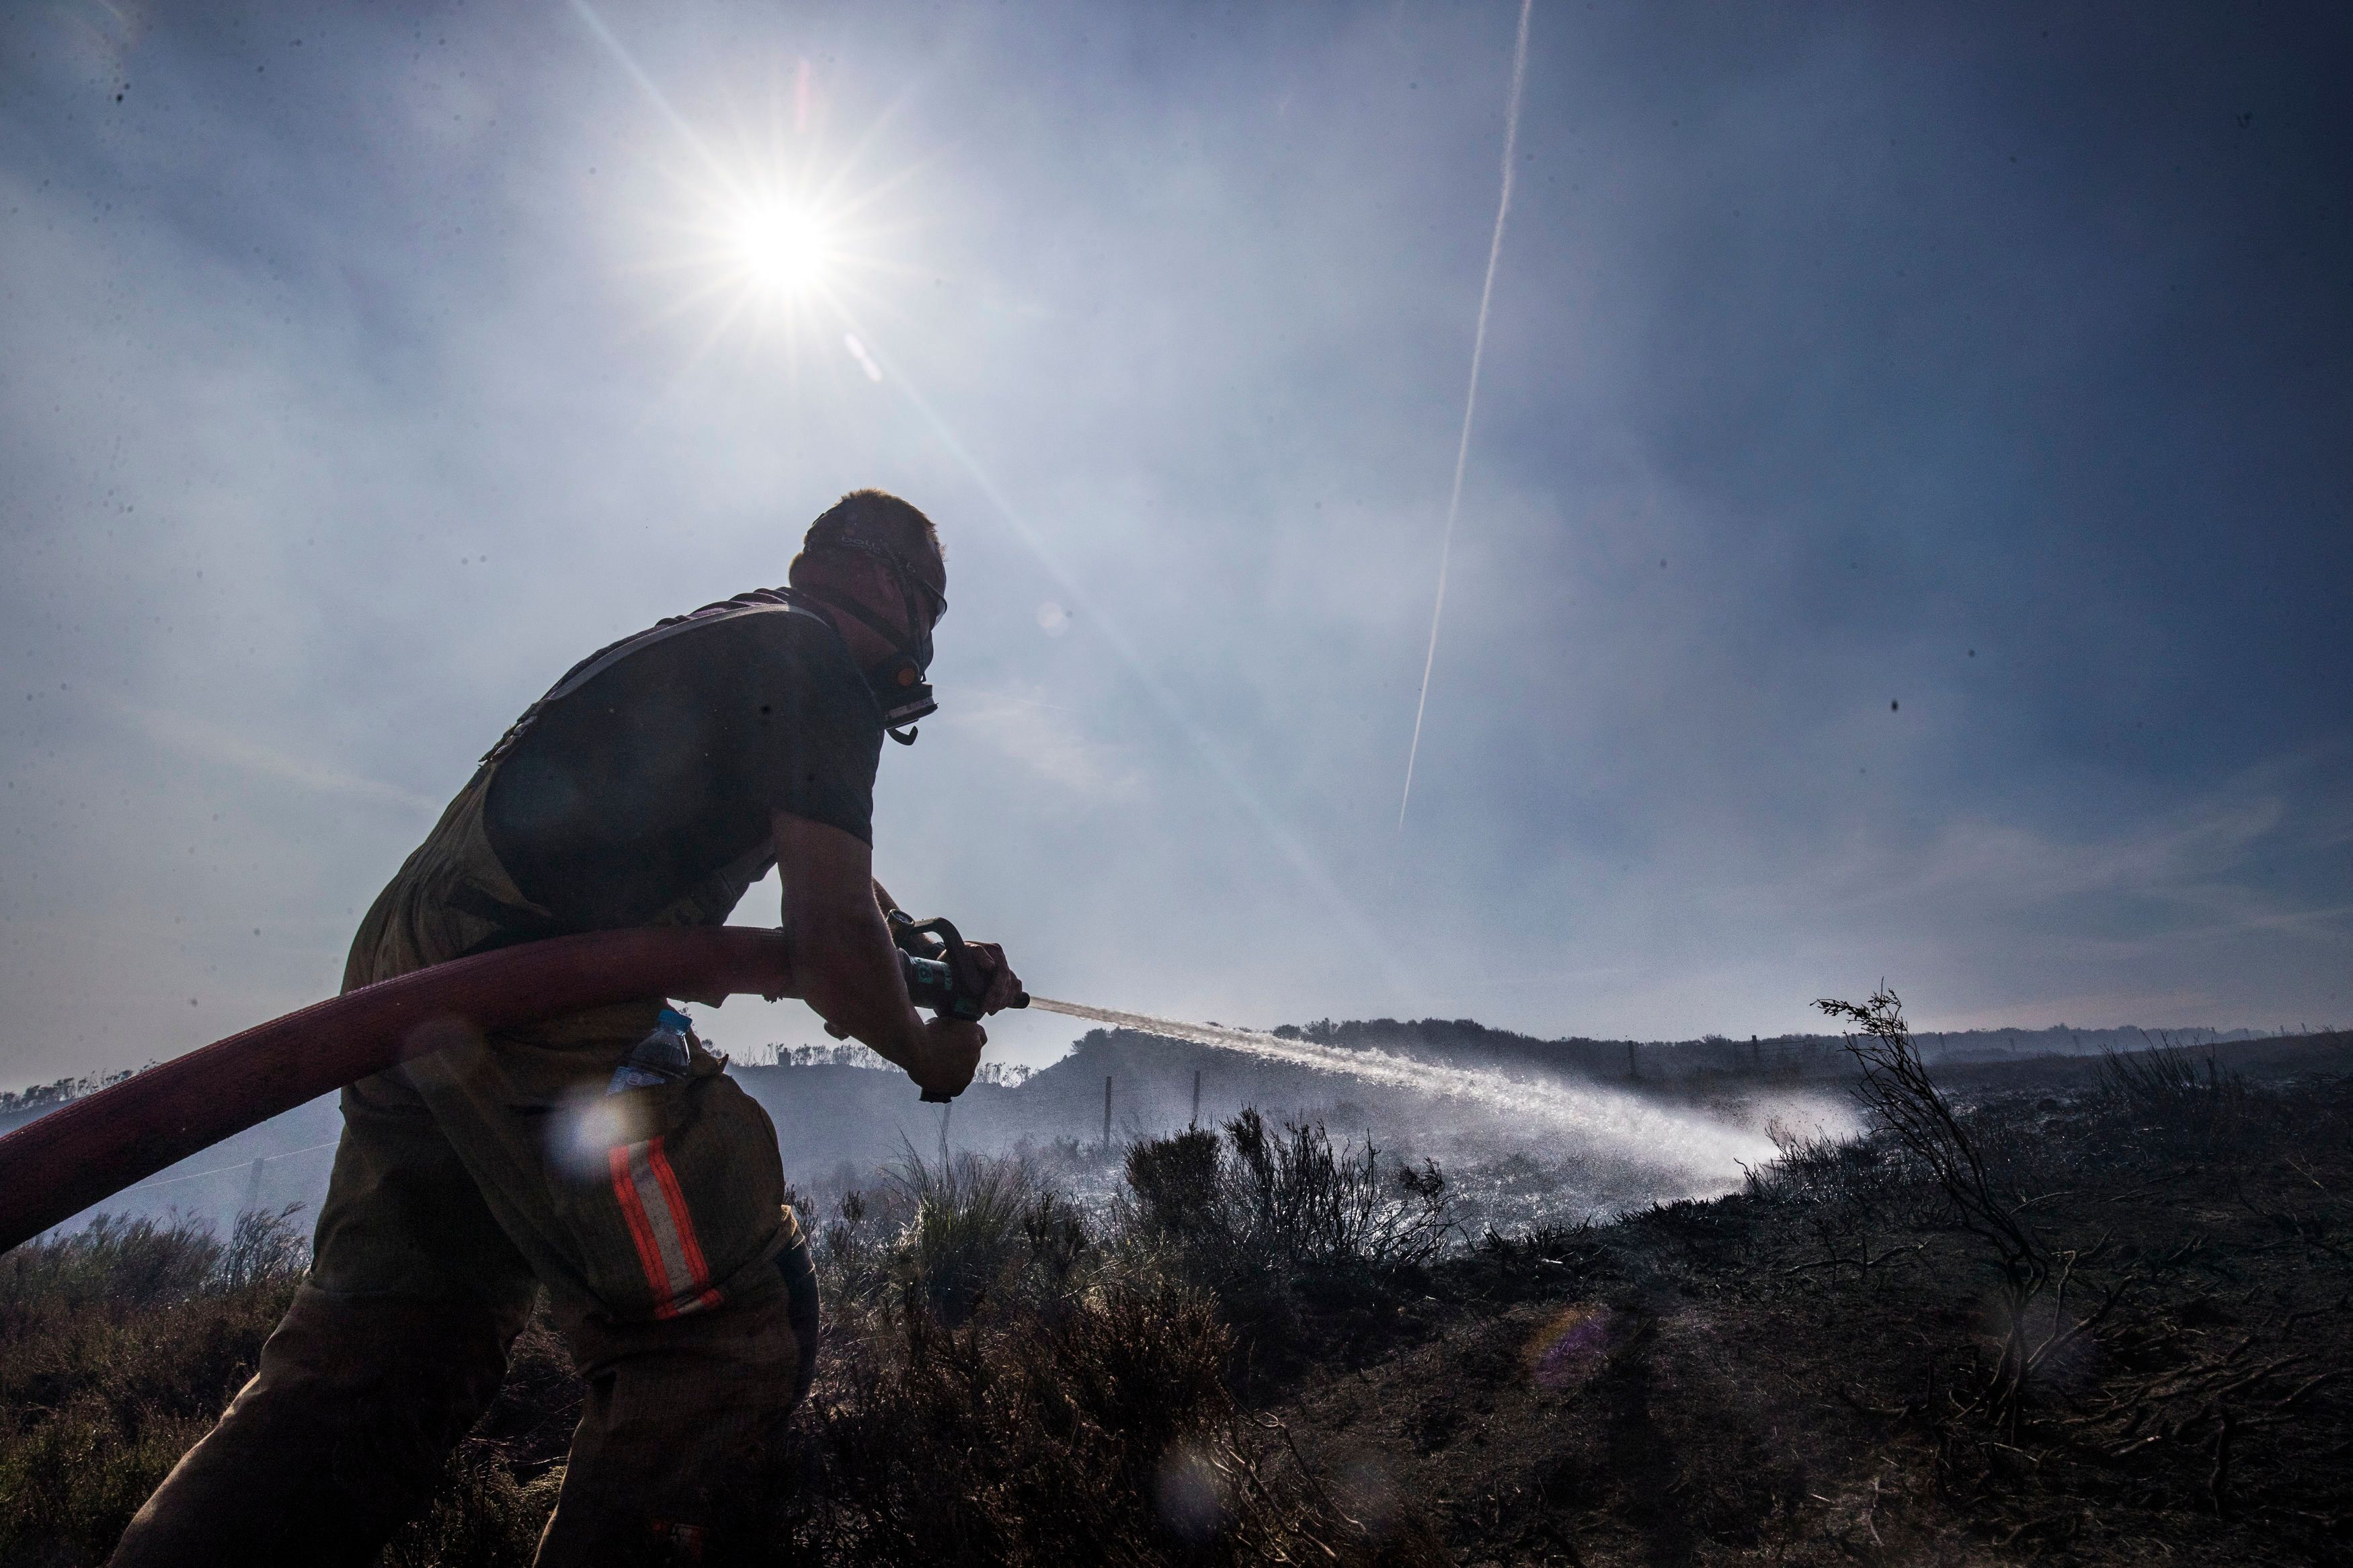 Saddleworth Moor Fire Being Treated As Arson, Police